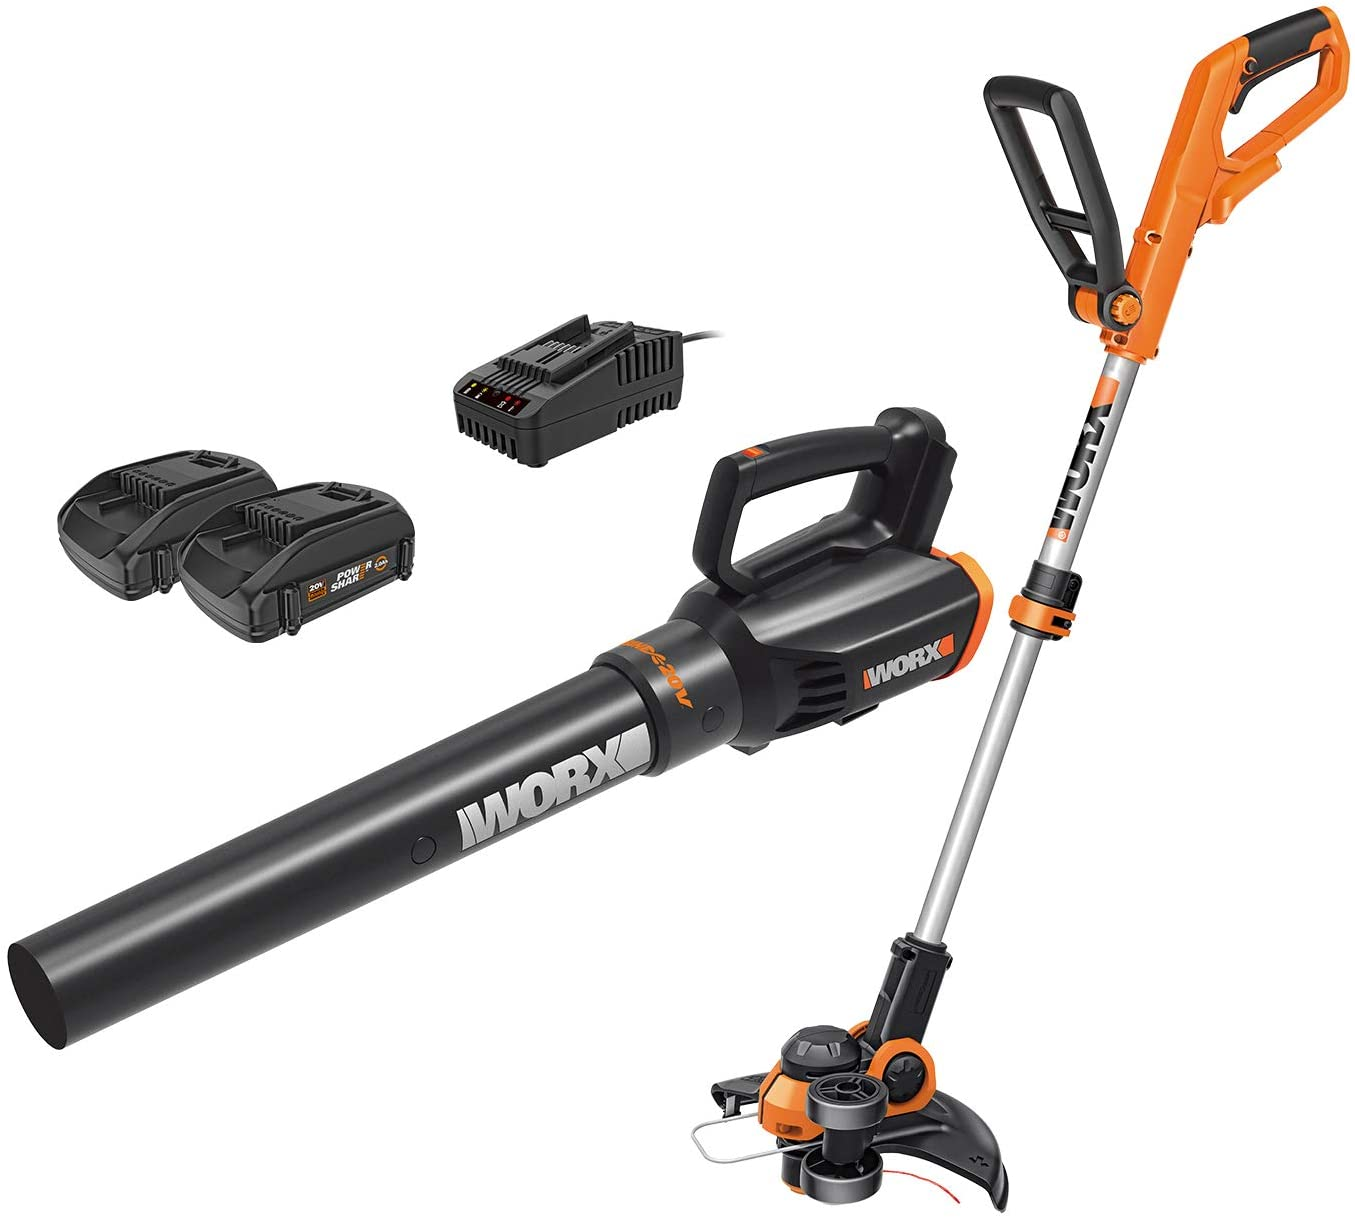 WORX Cordless String Trimmer and Blower WG929.1 Combo, 20V 2 Batteries, Grass Weed Edger : Garden & Outdoor